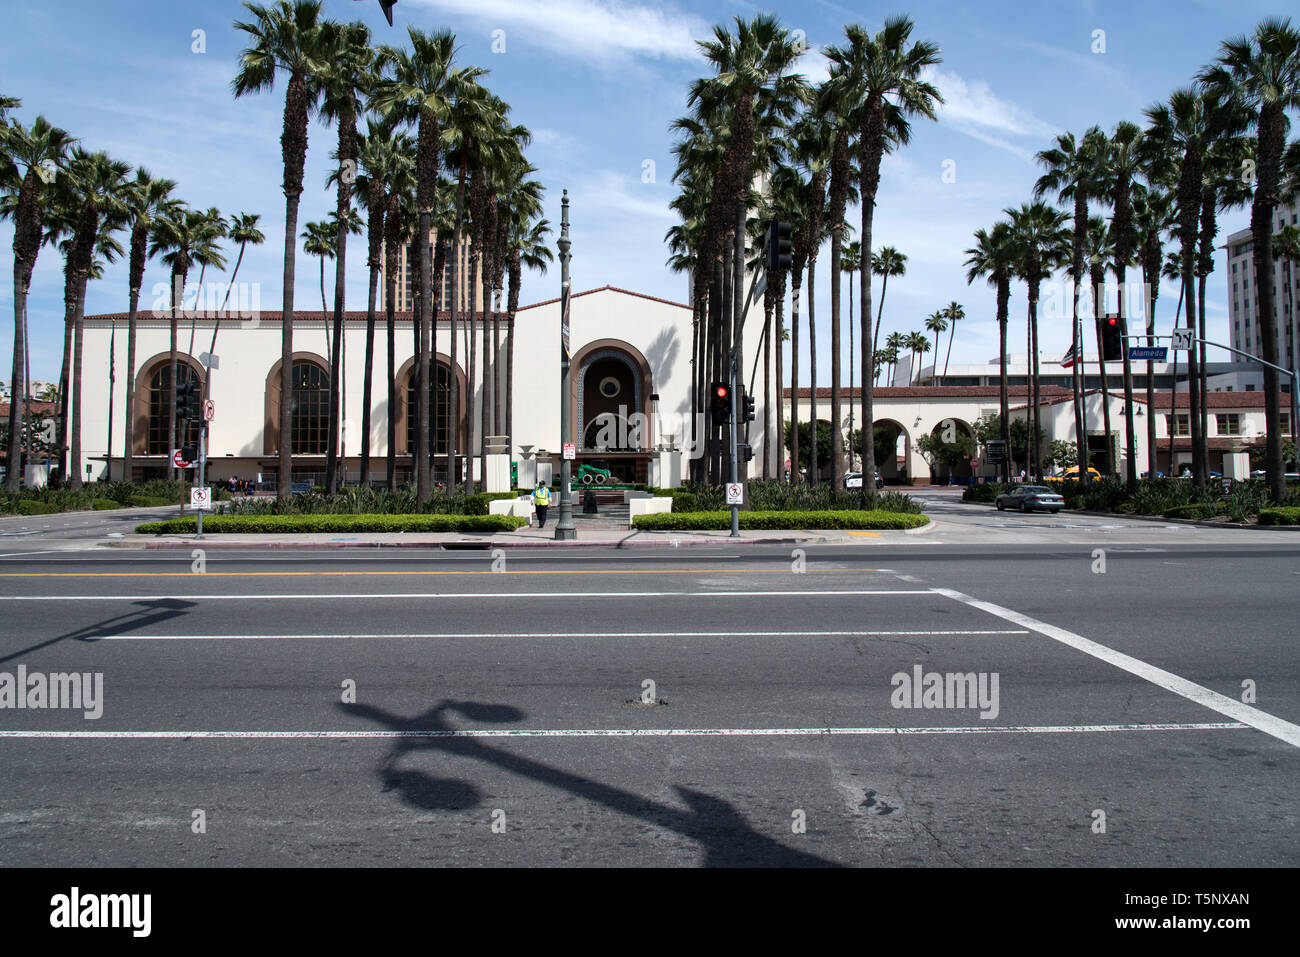 LOS ANGELES, CA/USA  - APRIL 14, 2019: Entrance to the historic Union Station in Downtown Los Angeles - Stock Image